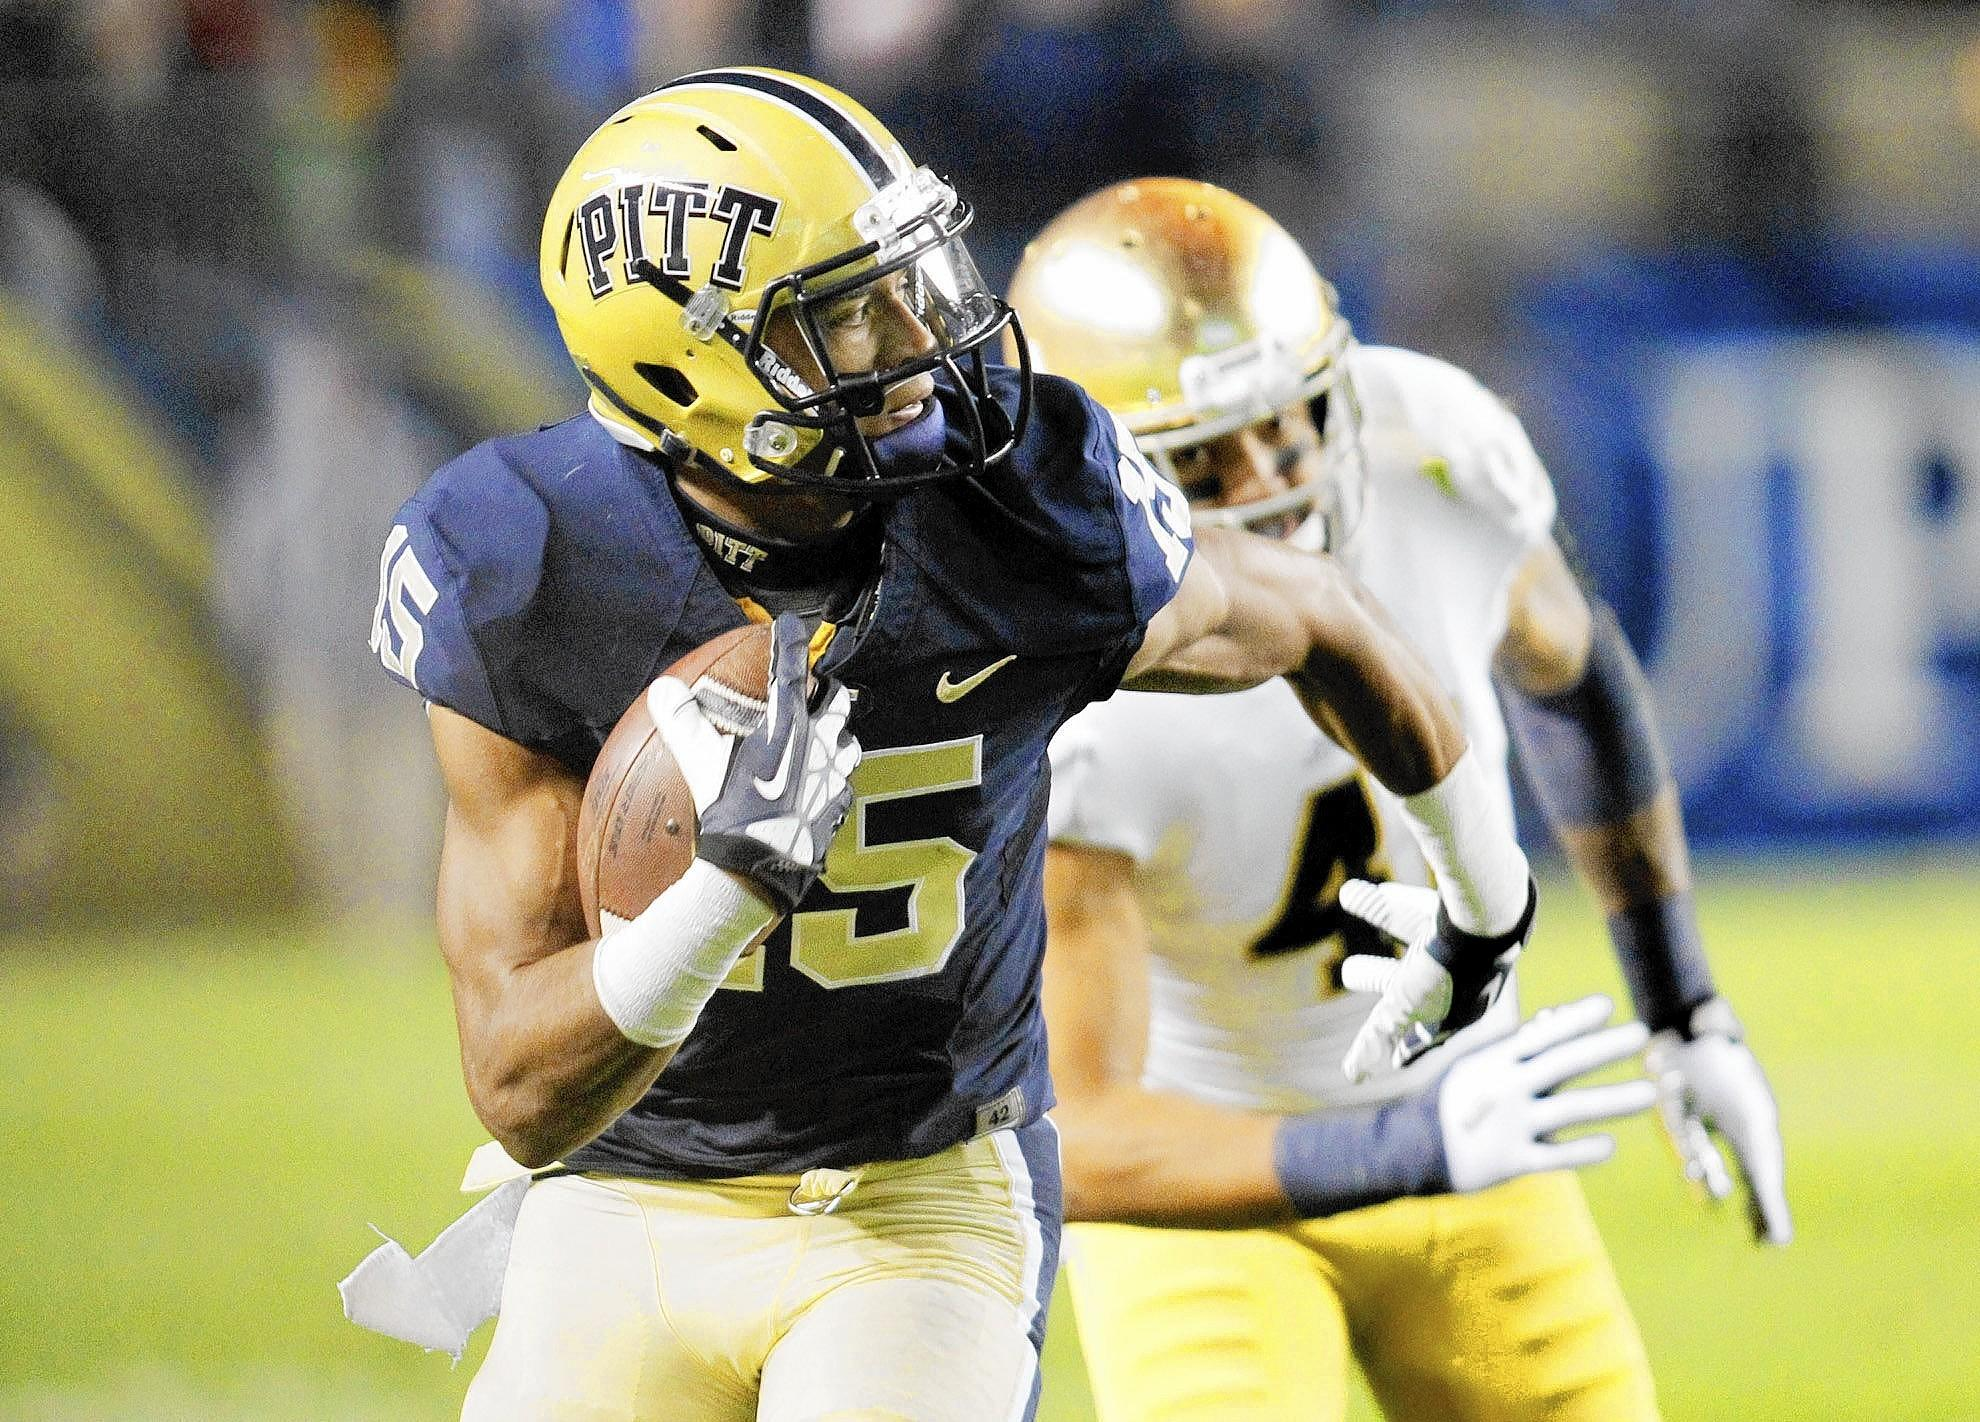 Pittsburgh wide receiver Devin Street, a Liberty High School grad, ran a 4.55 40 at the NFL Combine.